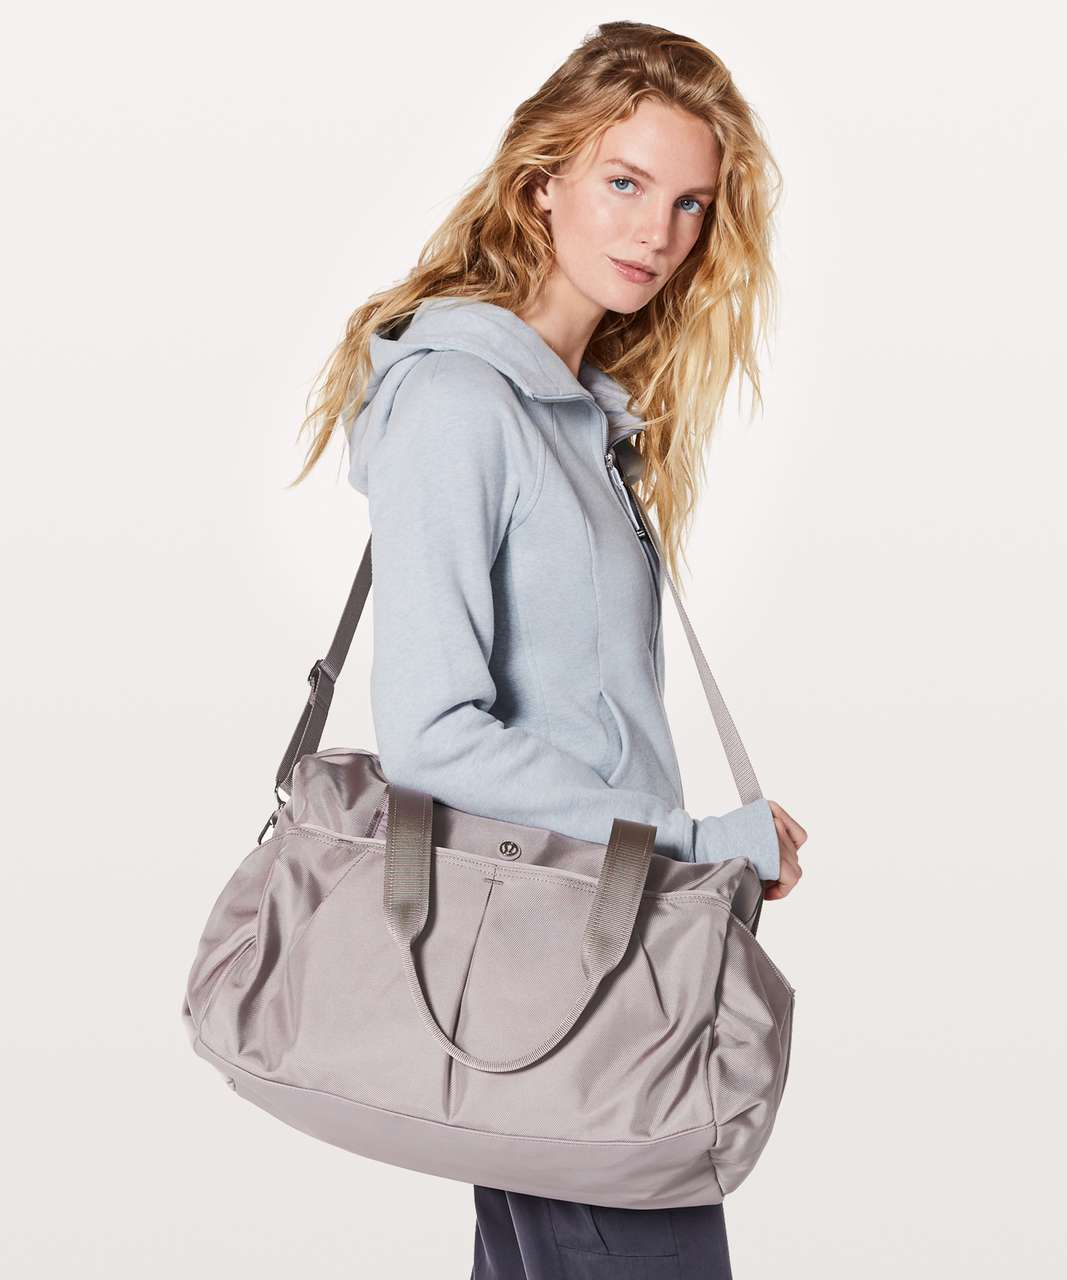 Lululemon All Day Duffel *Heatproof Pocket 31L - Dark Chrome